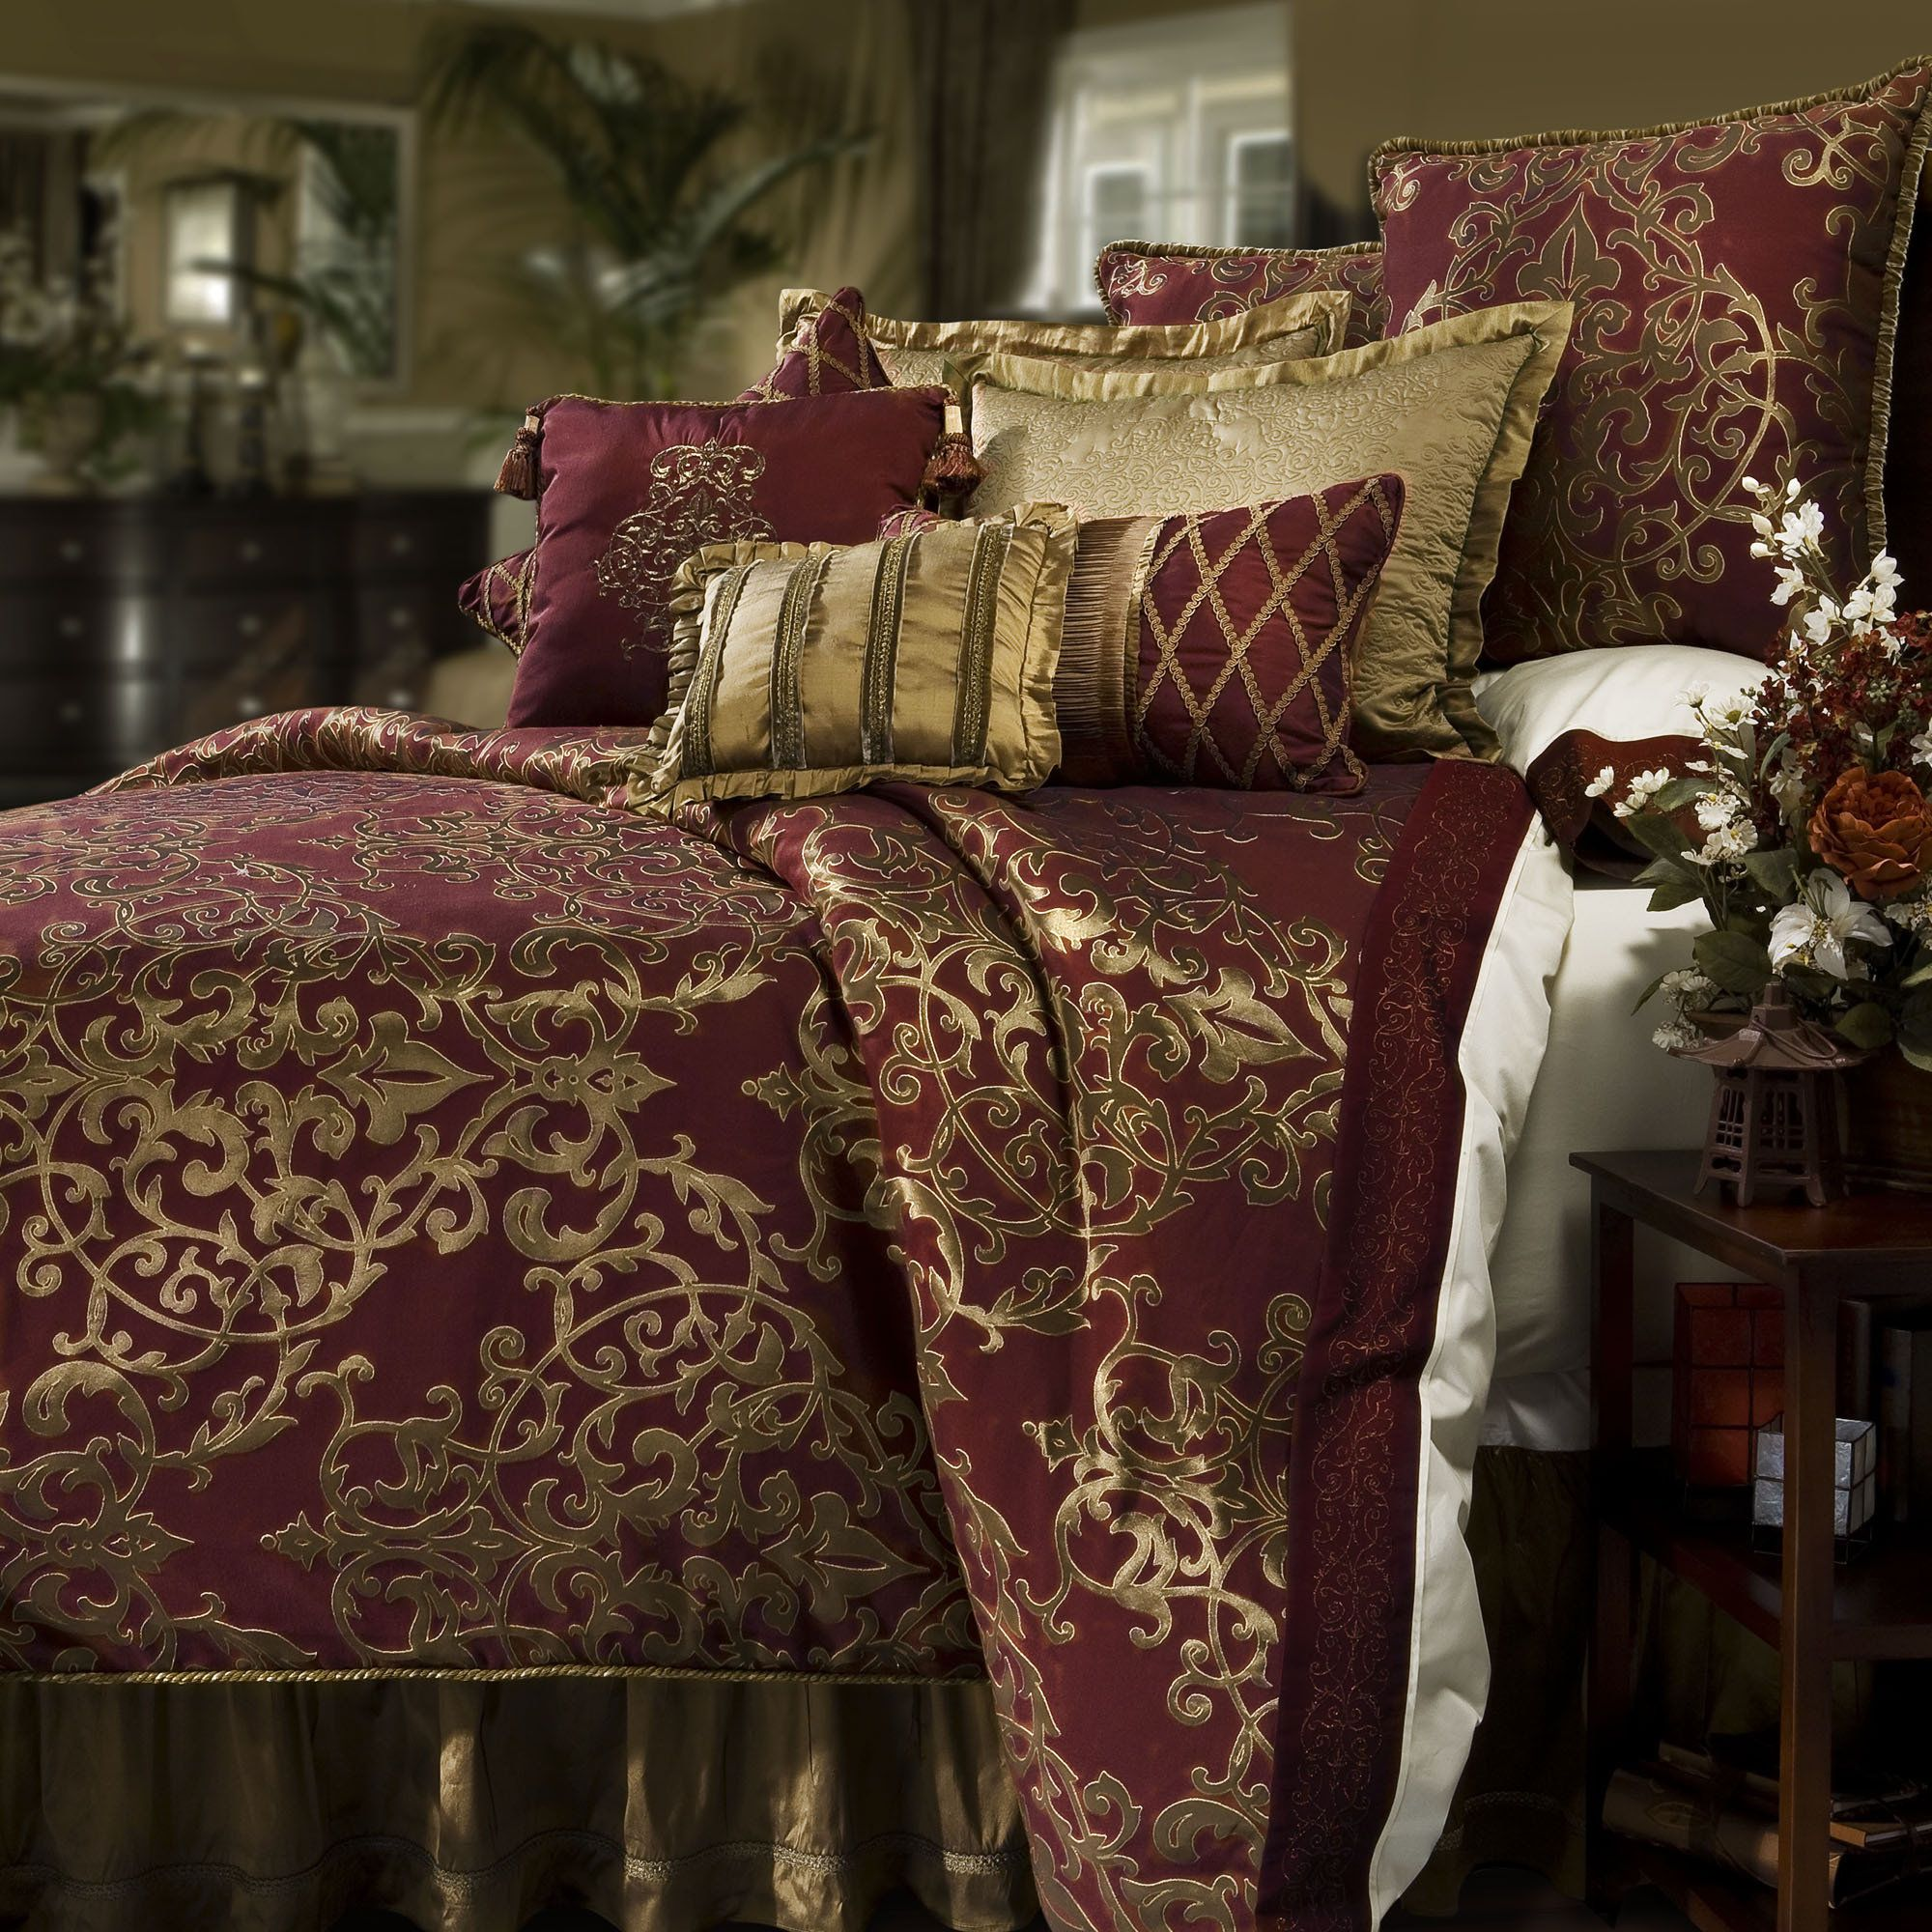 Glenaire forter Bedding by Veratex For the Home